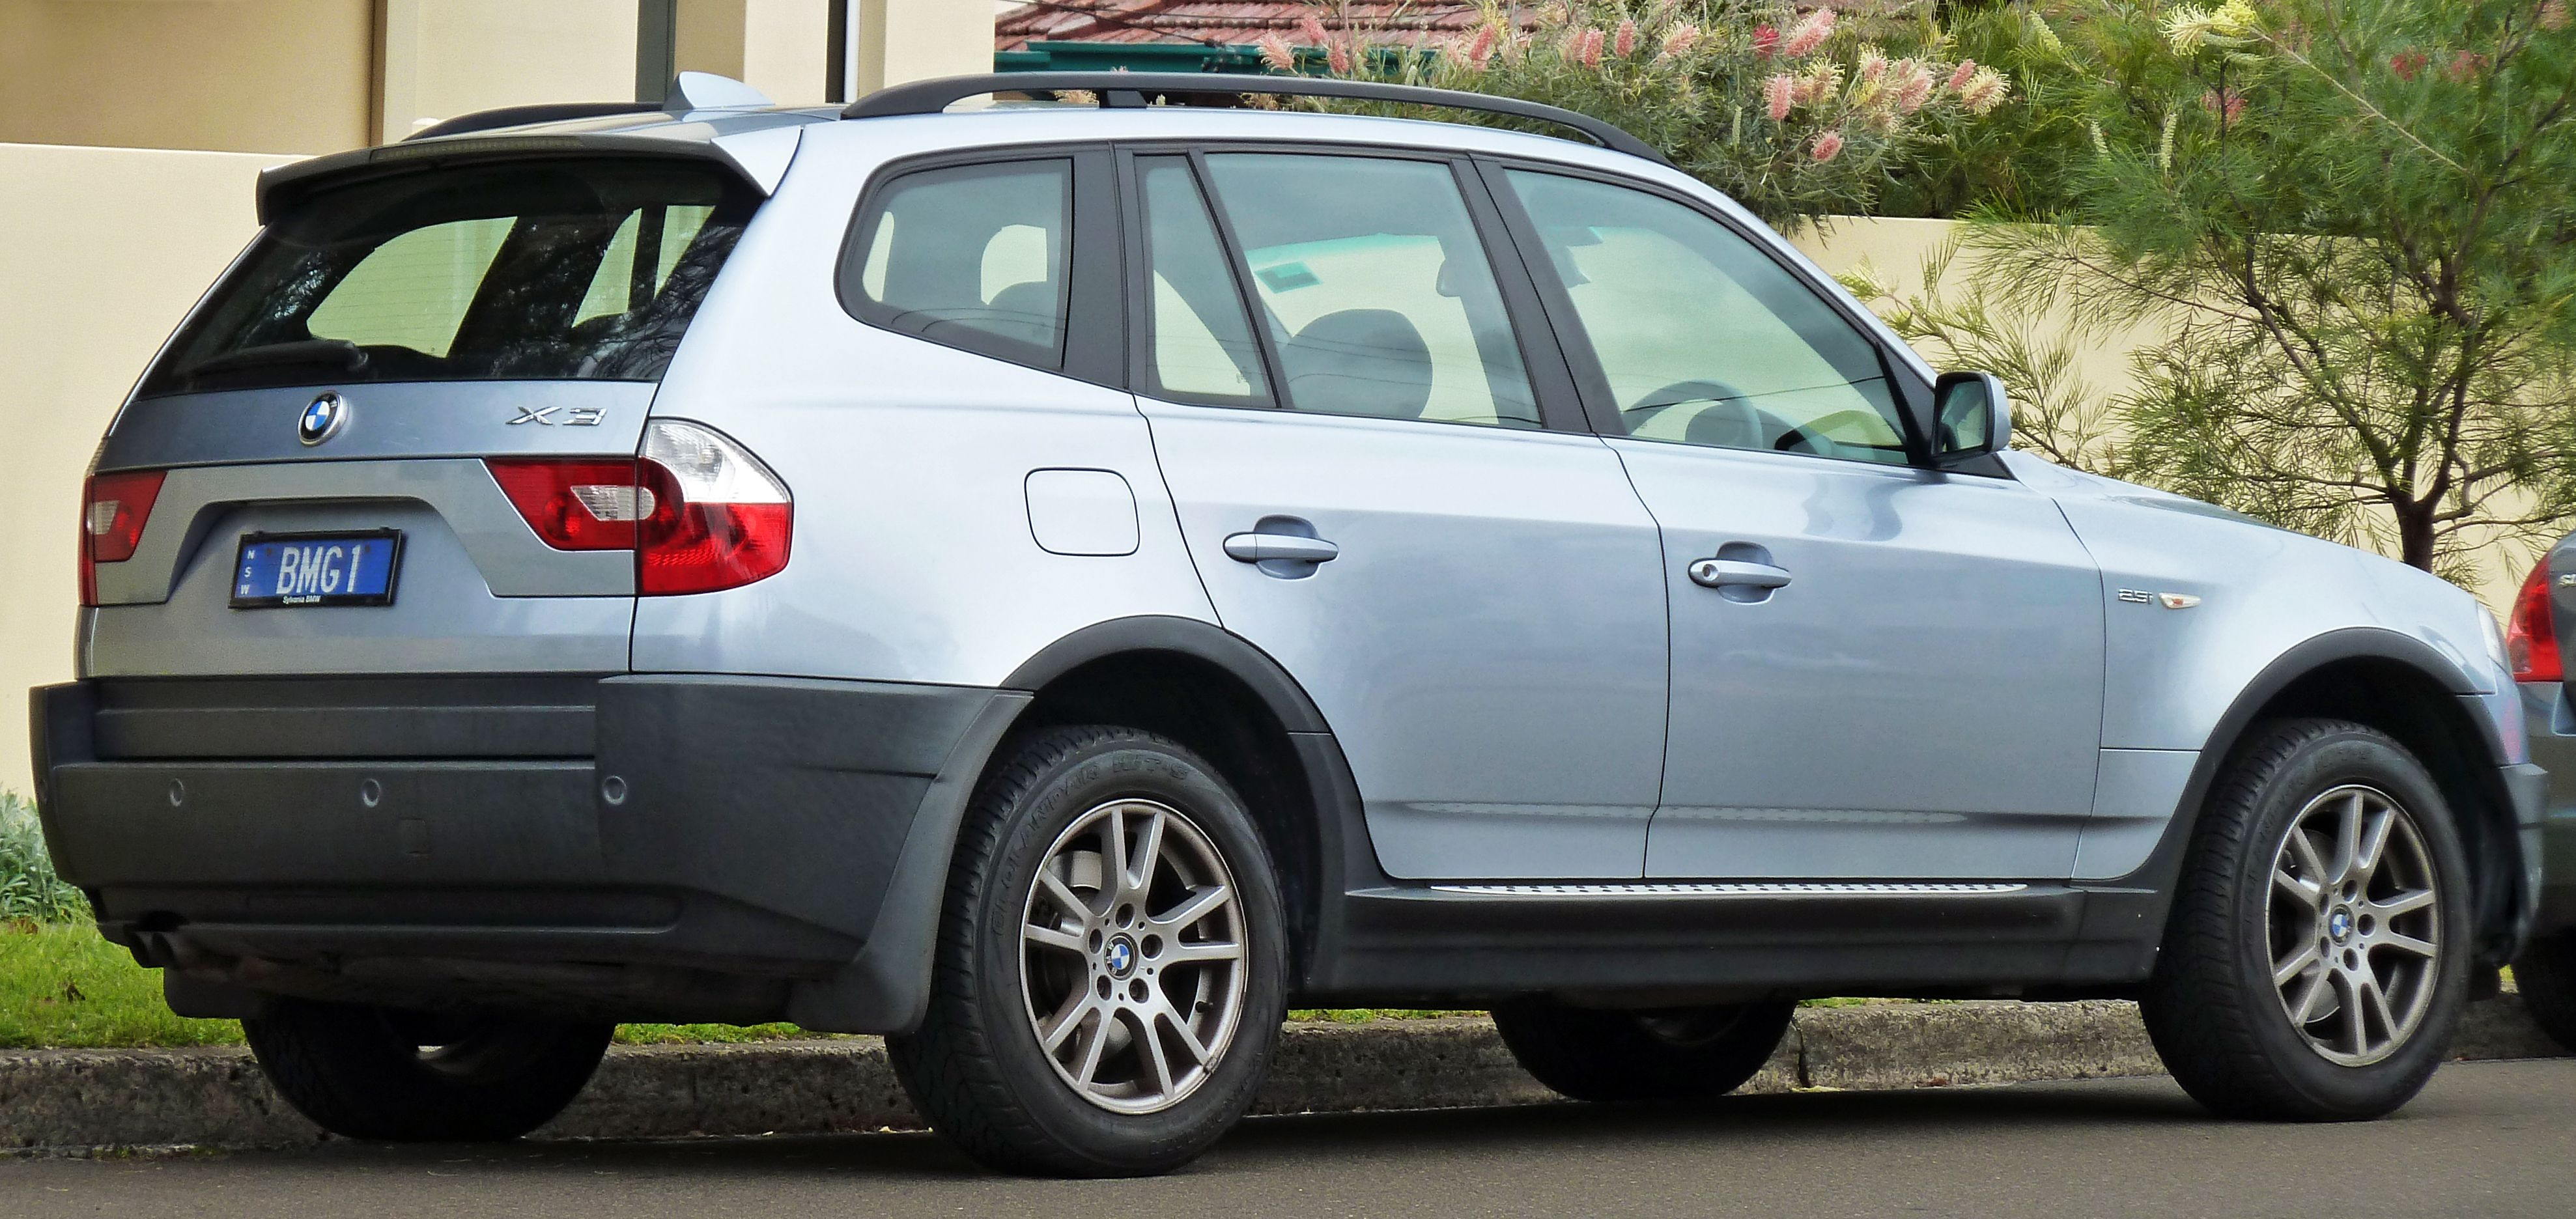 E83 BMW X3 3.0i Sport Package | Cars | Pinterest | Bmw x3, BMW and ...